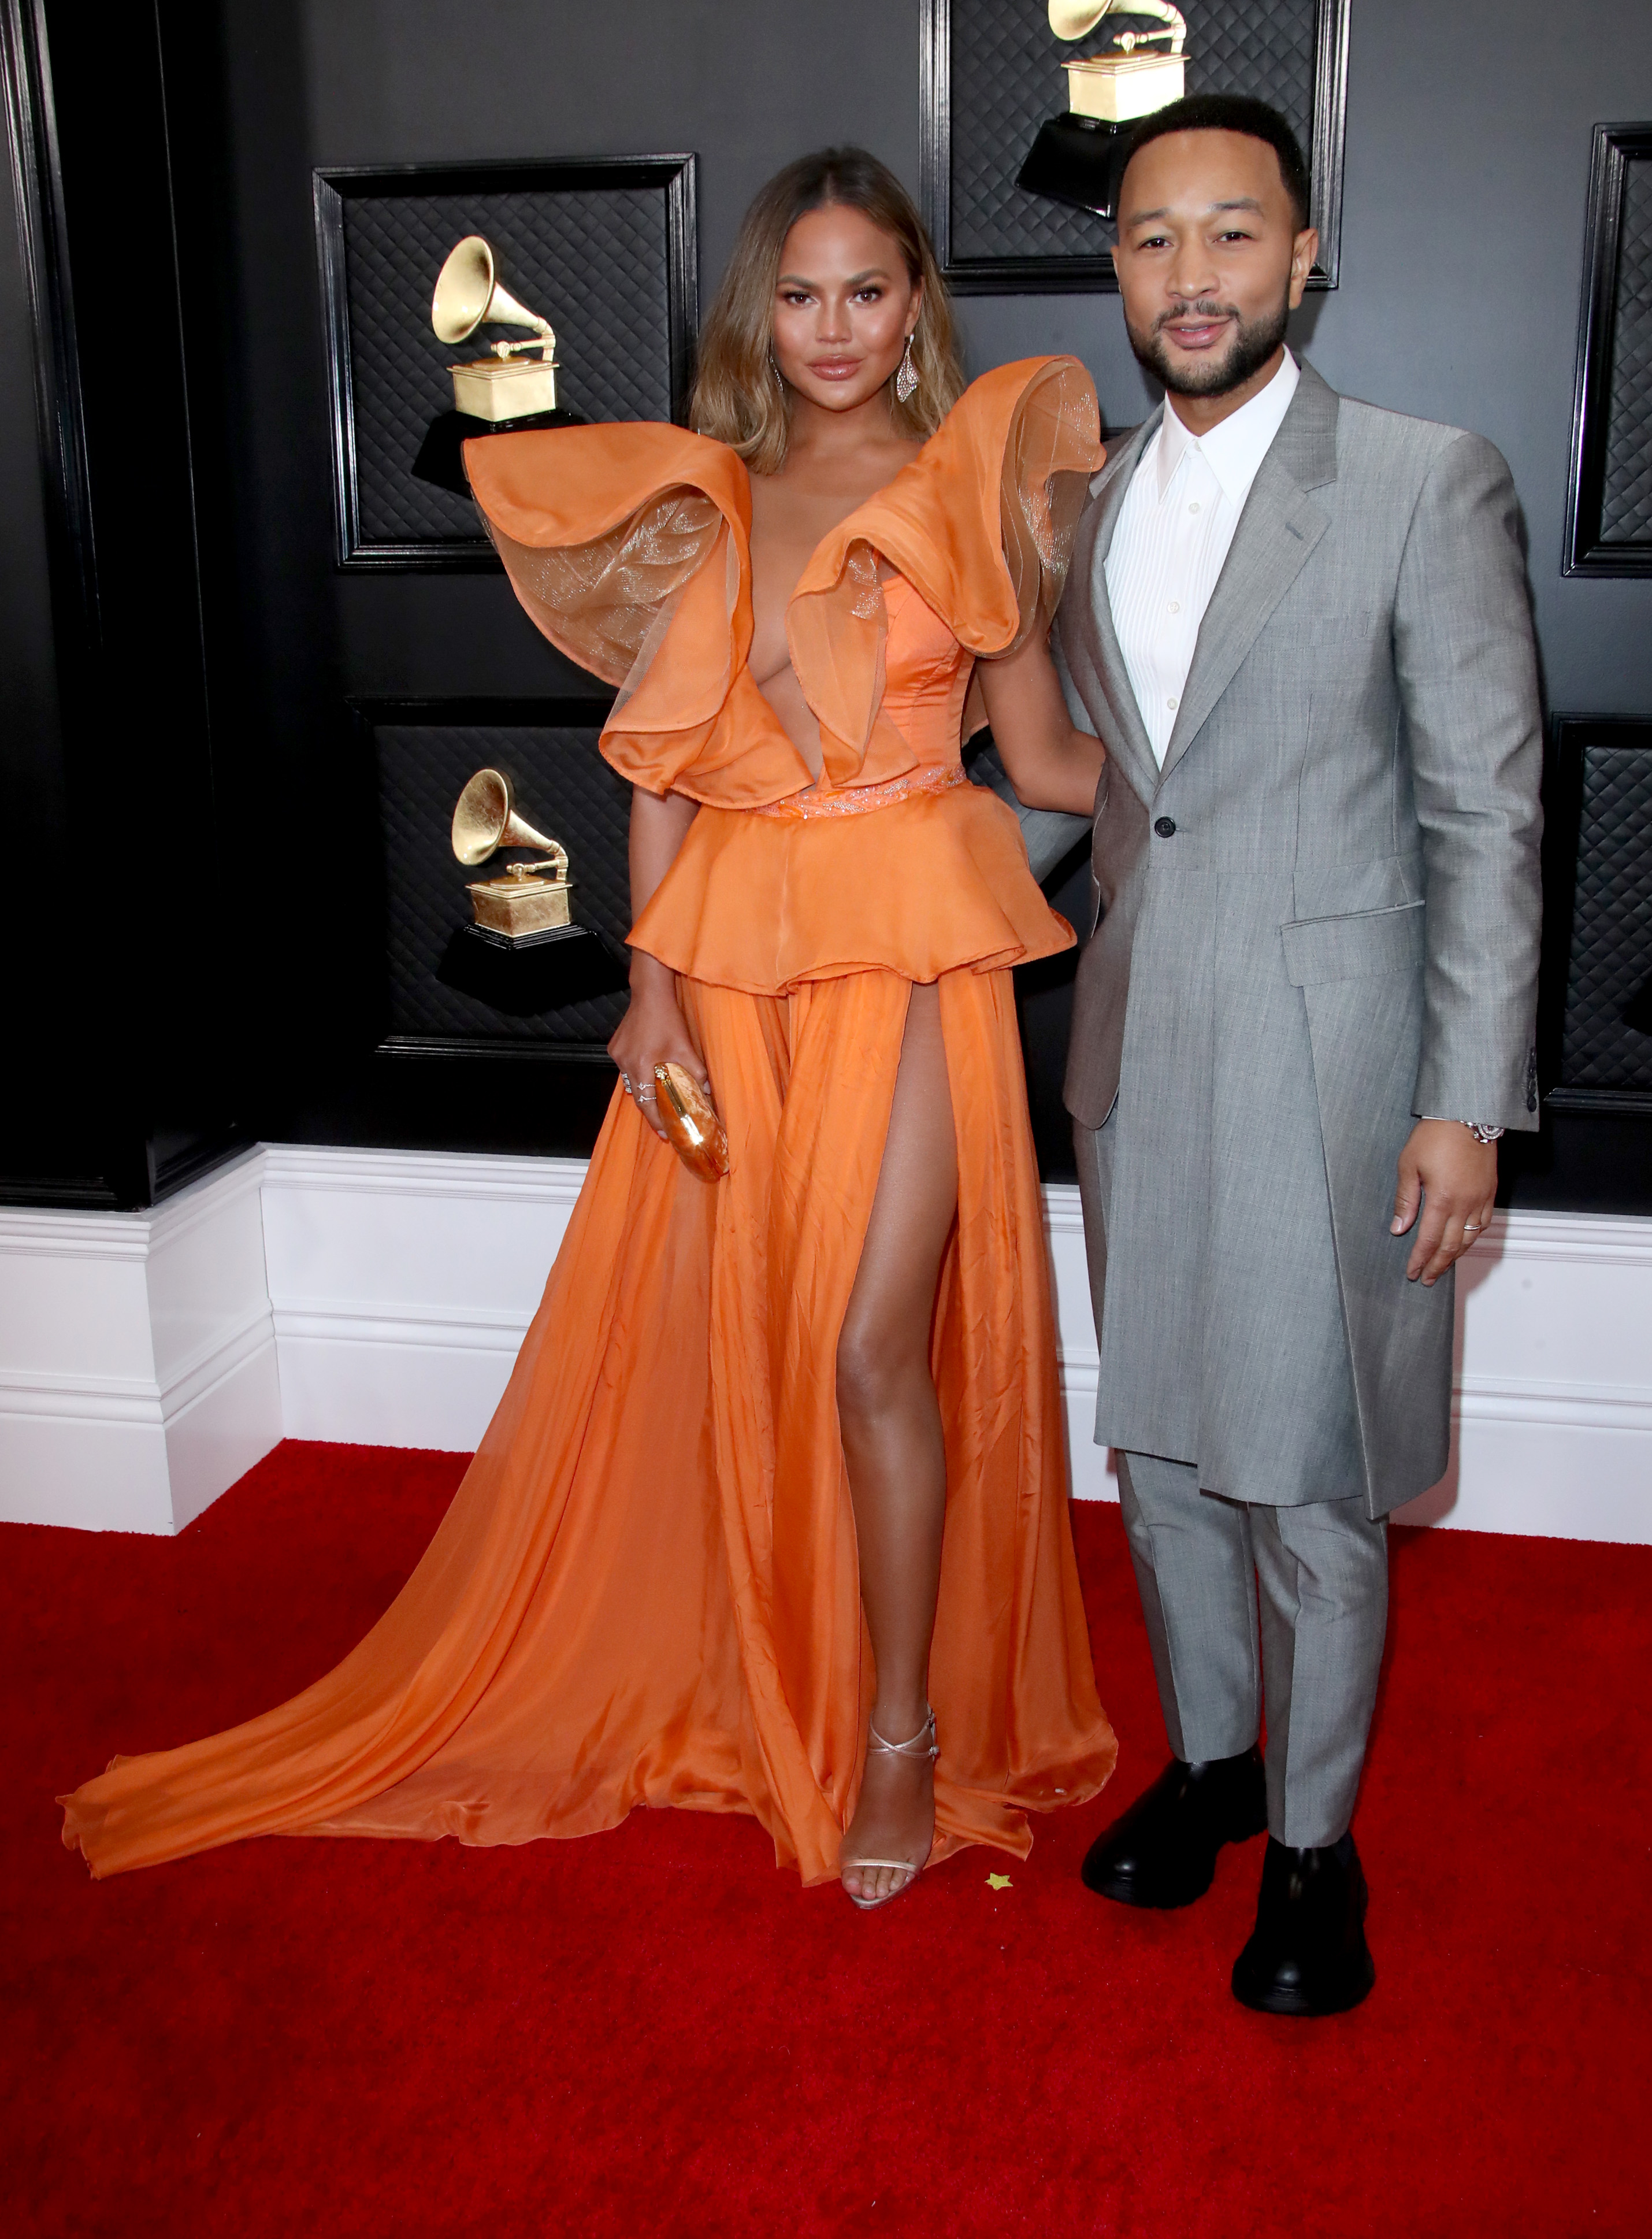 Chrissy Teigen and John Legend Turn the 2020 Grammys Red Carpet Into Date Night